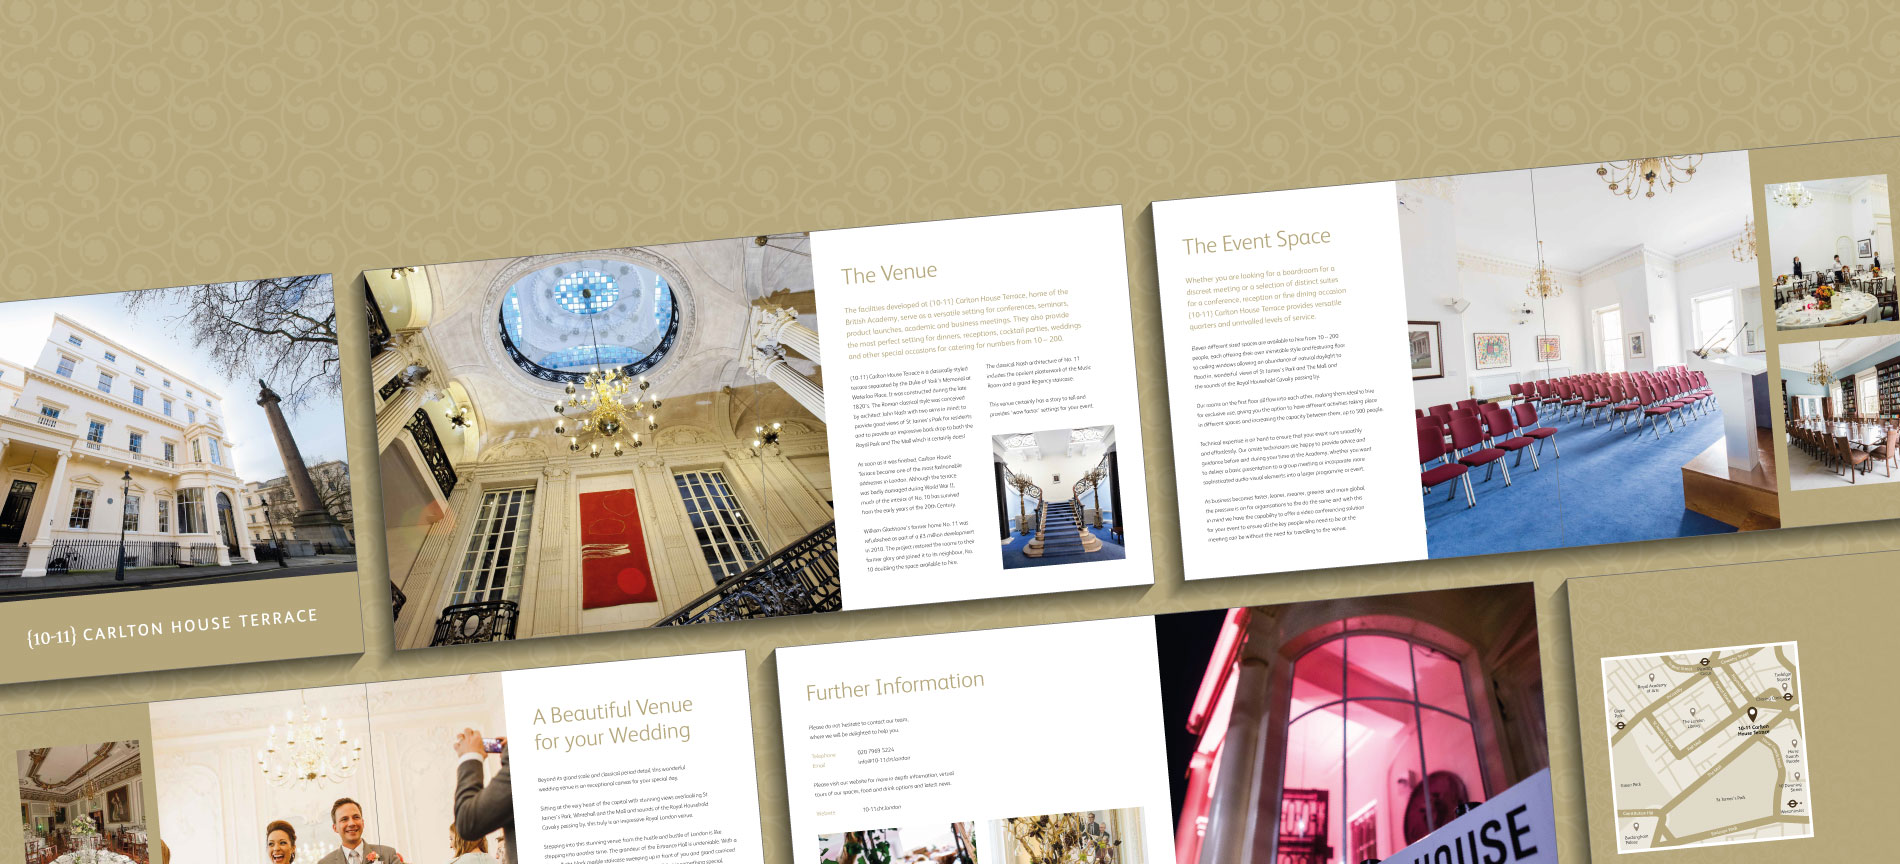 The 10-11 Carlton House Terrace wedding brochure - desktop